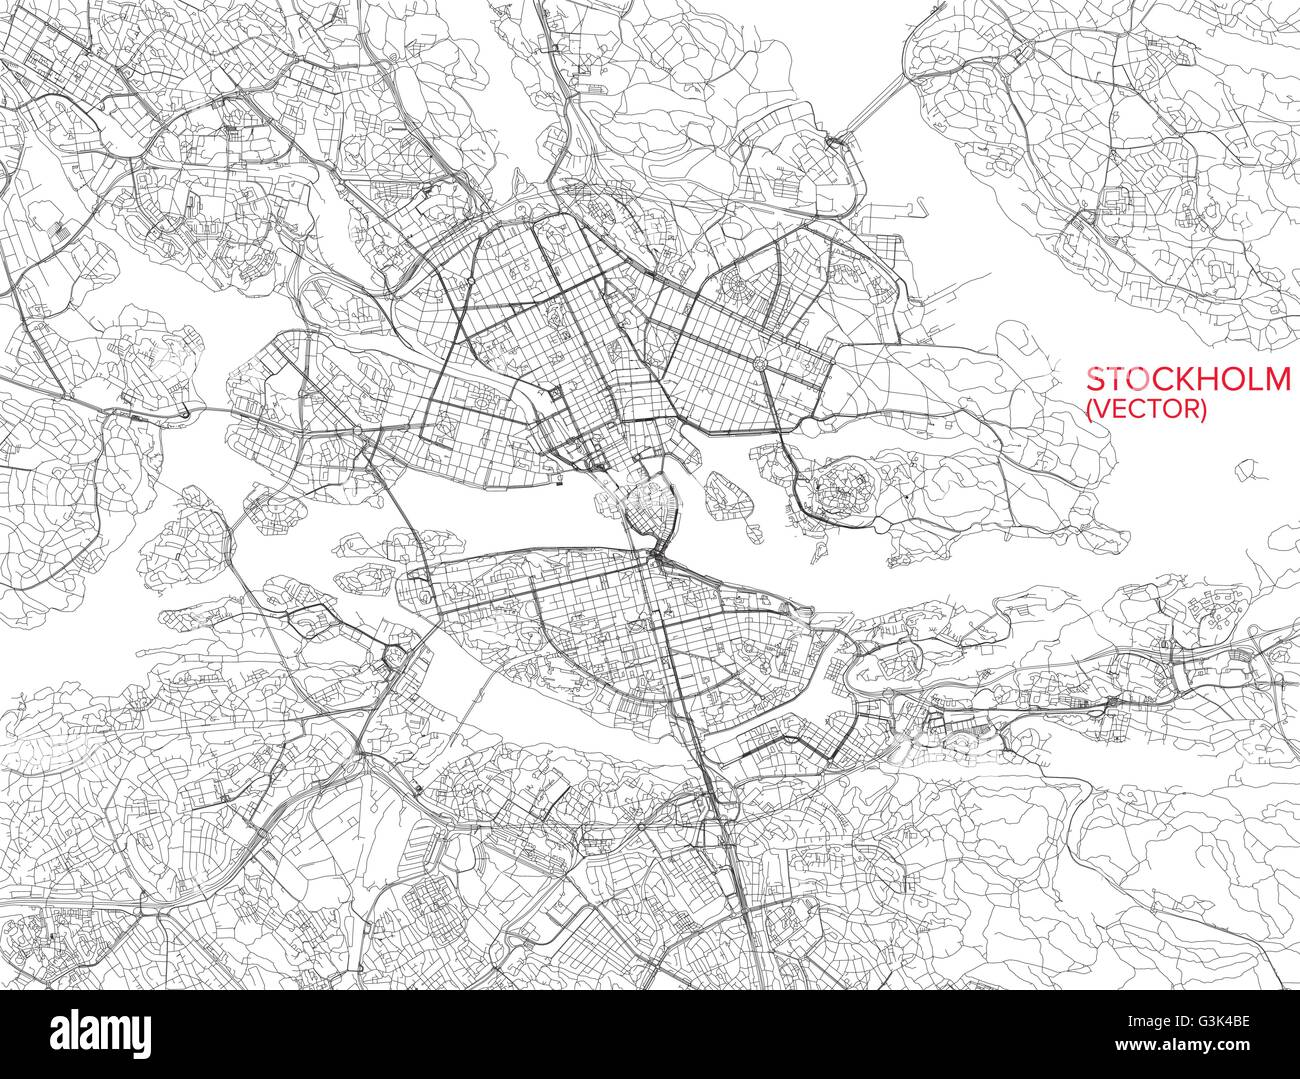 Stockholm Map Satellite View Sweden Stock Vector Art - Sweden map search